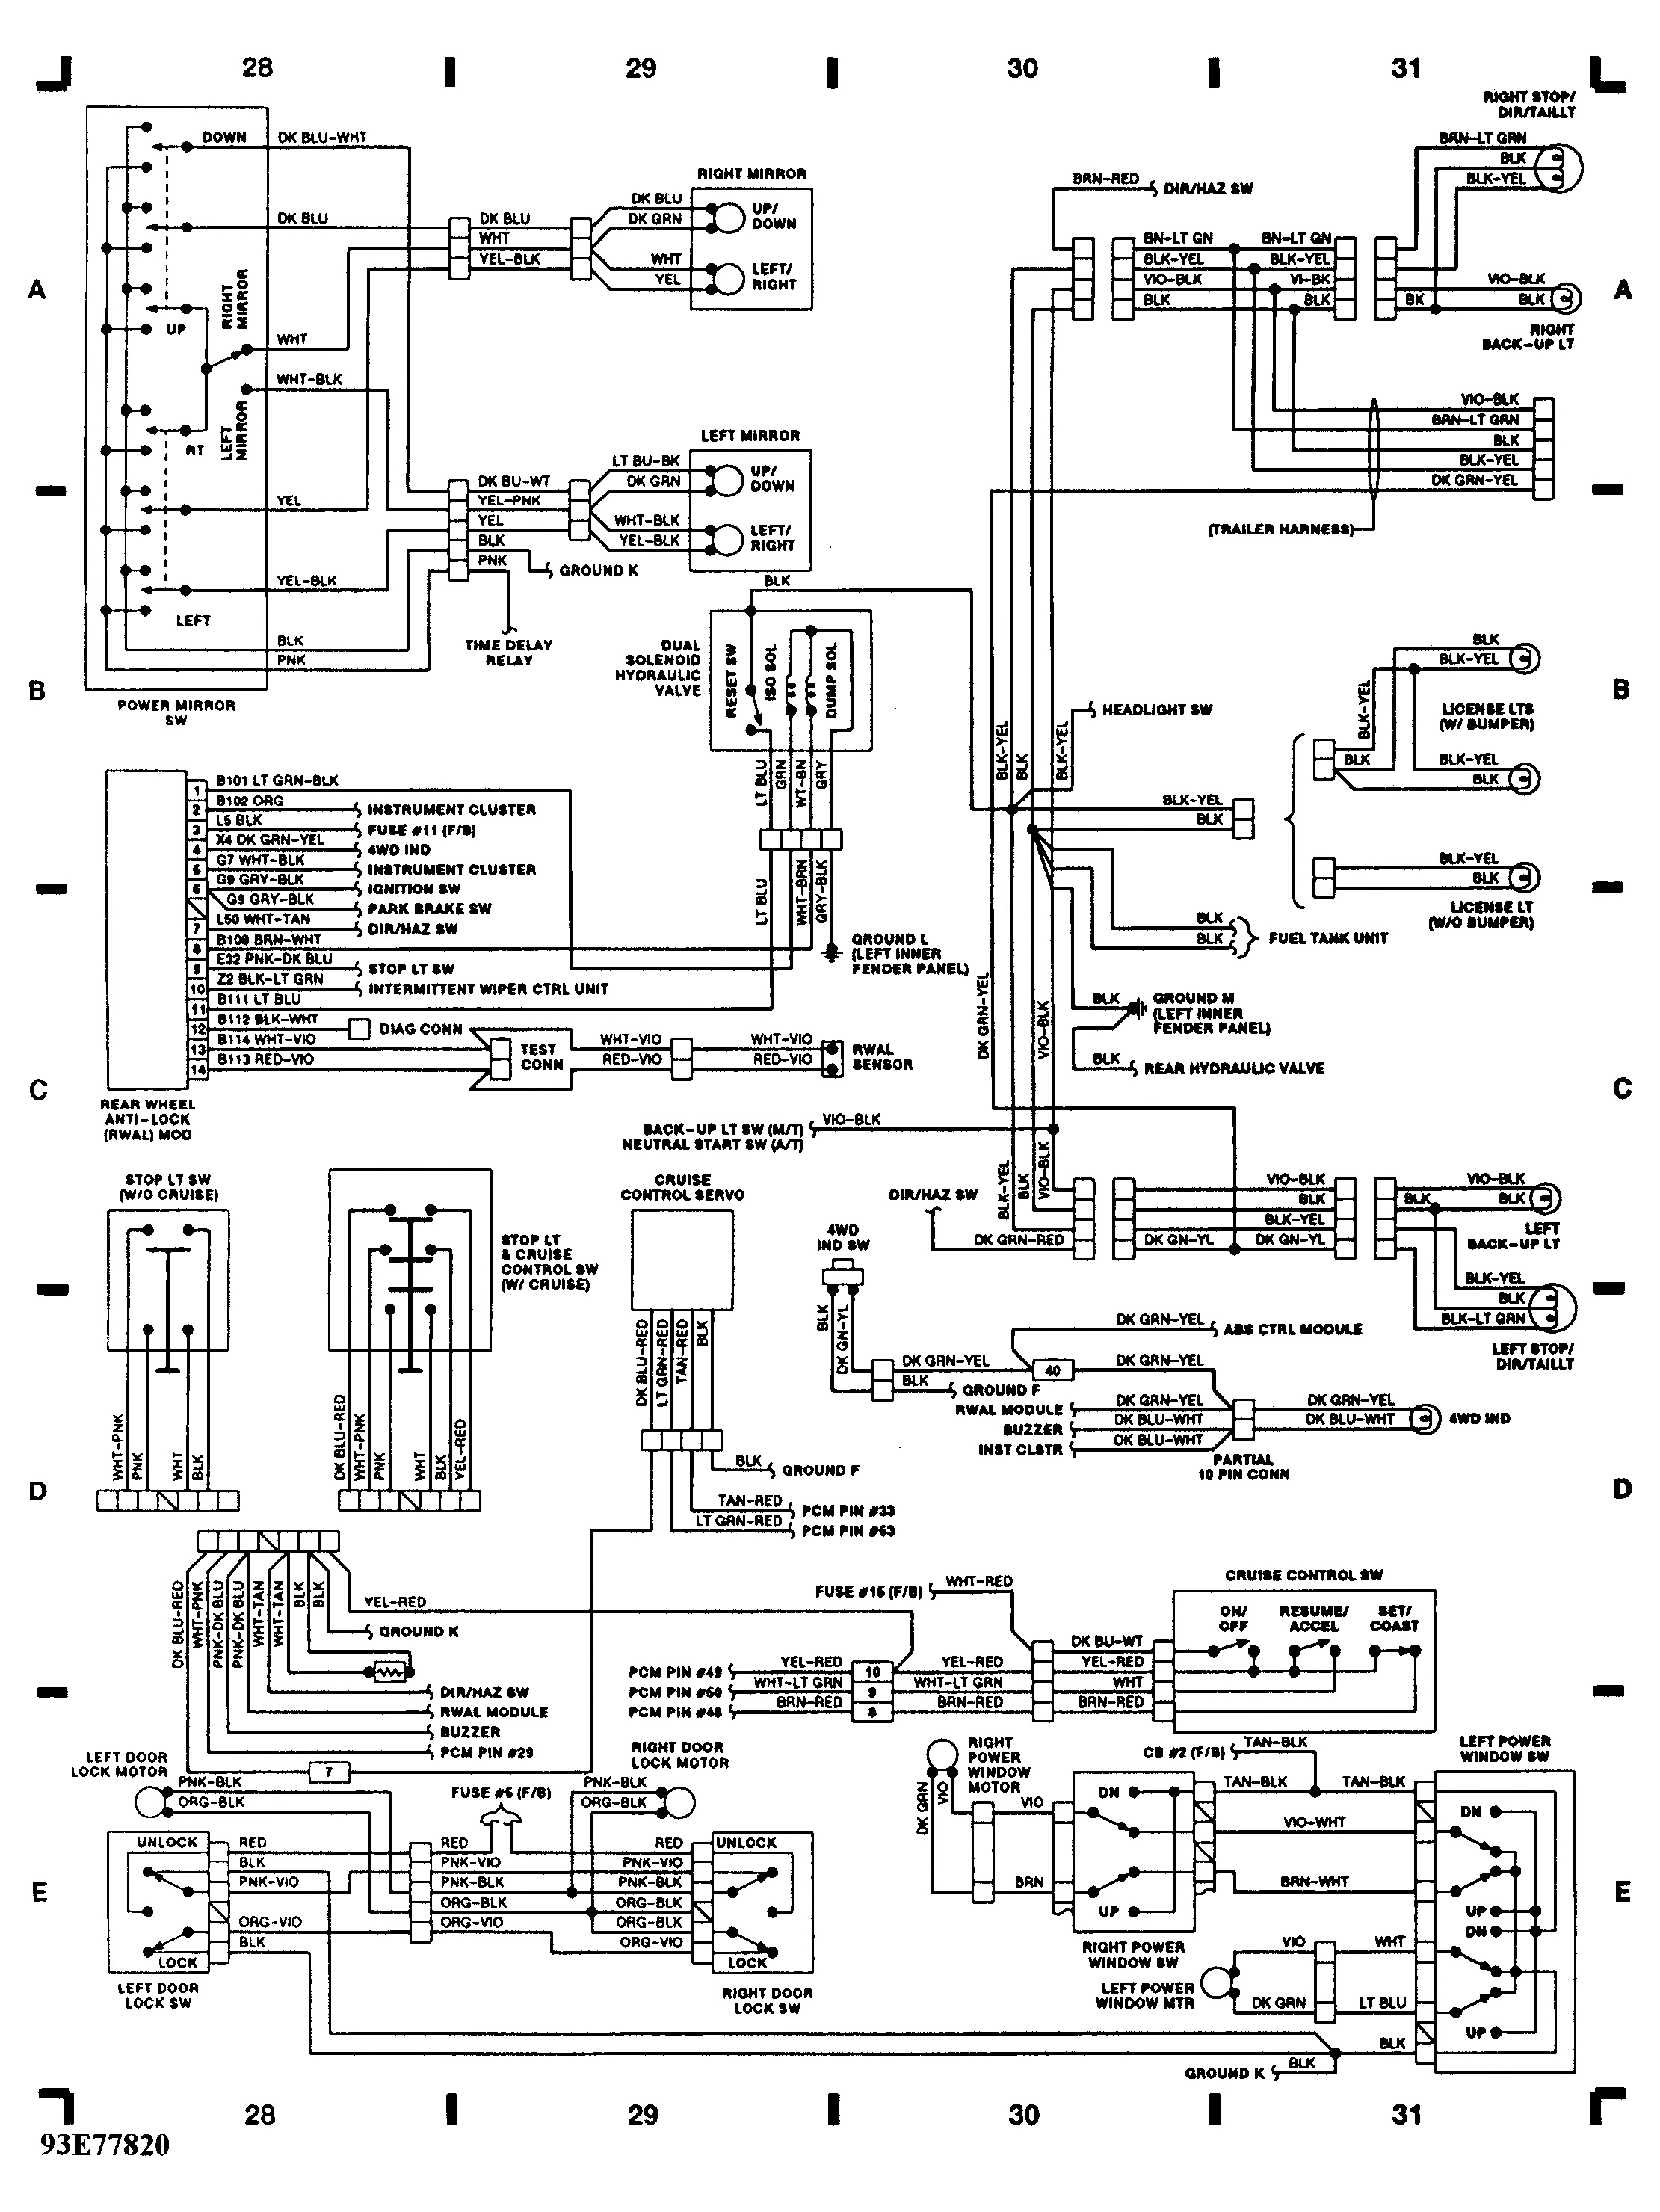 1995 Dodge Ram 1500 Tail Light Wiring Diagram - Wiring Diagram